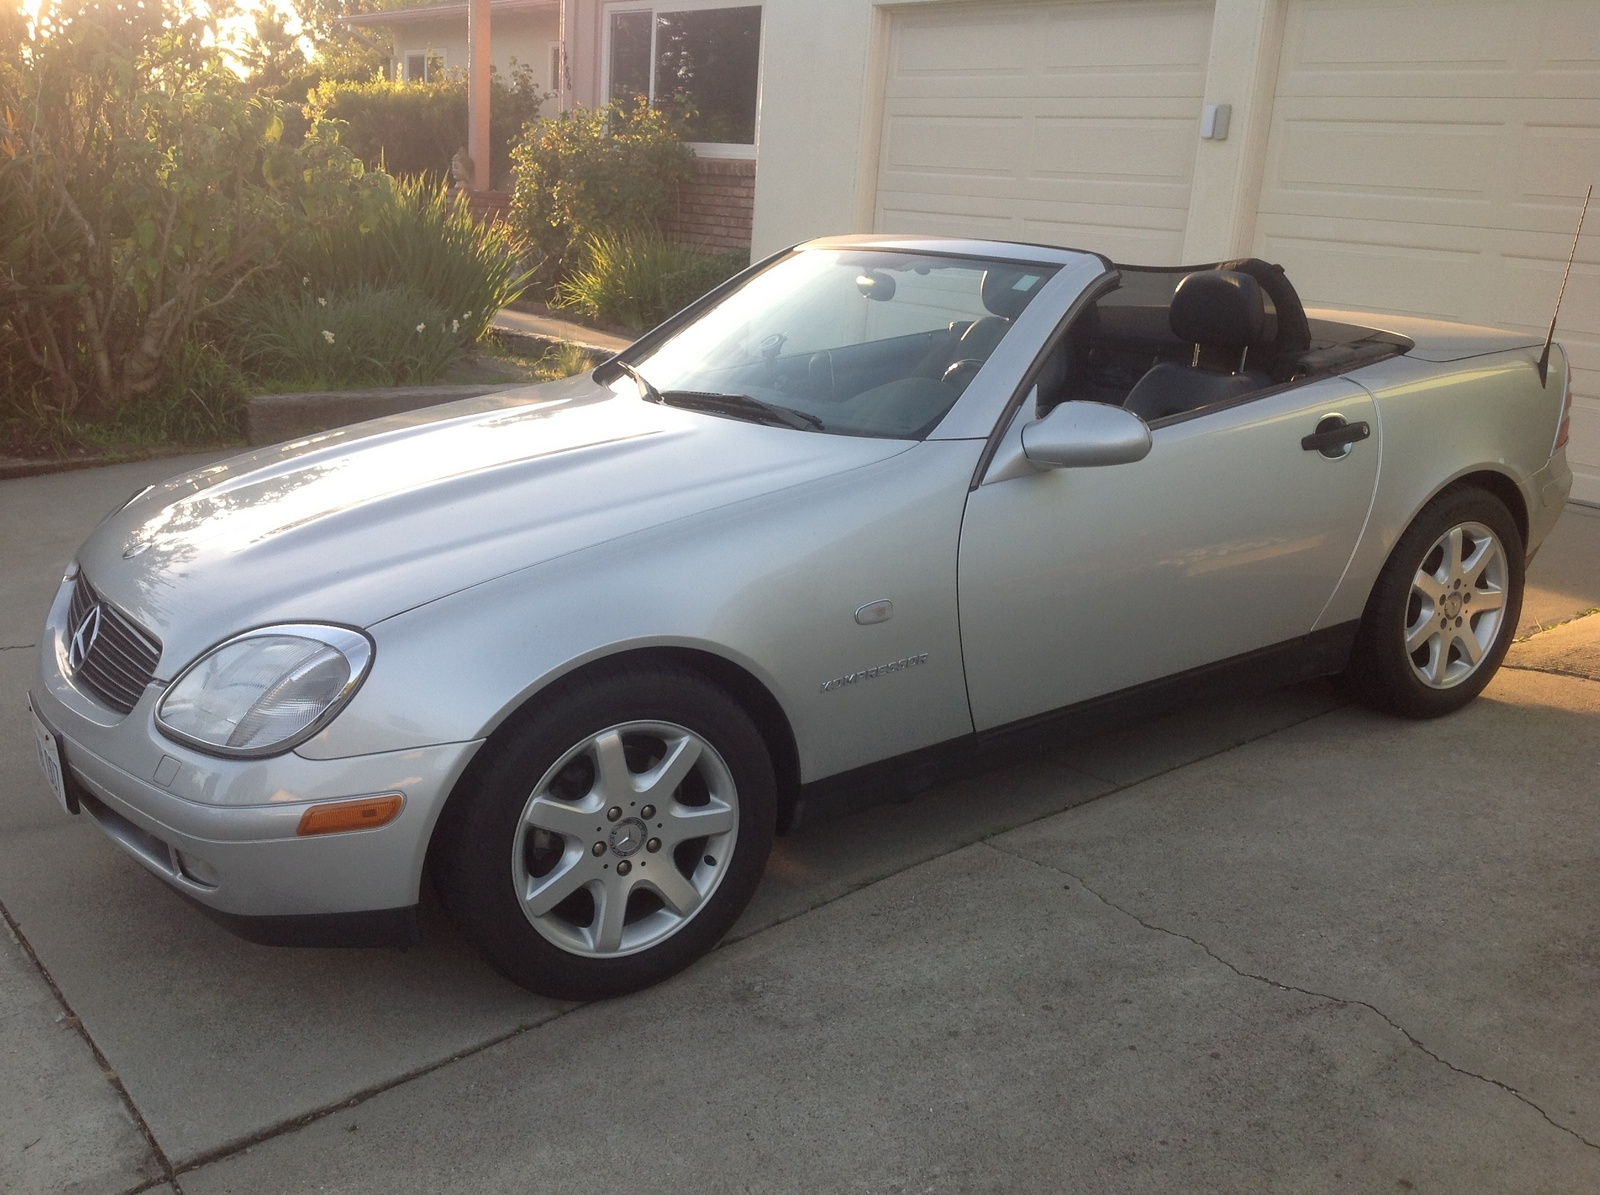 picture of 1998 mercedes benz slk class slk230 supercharged exterior. Black Bedroom Furniture Sets. Home Design Ideas